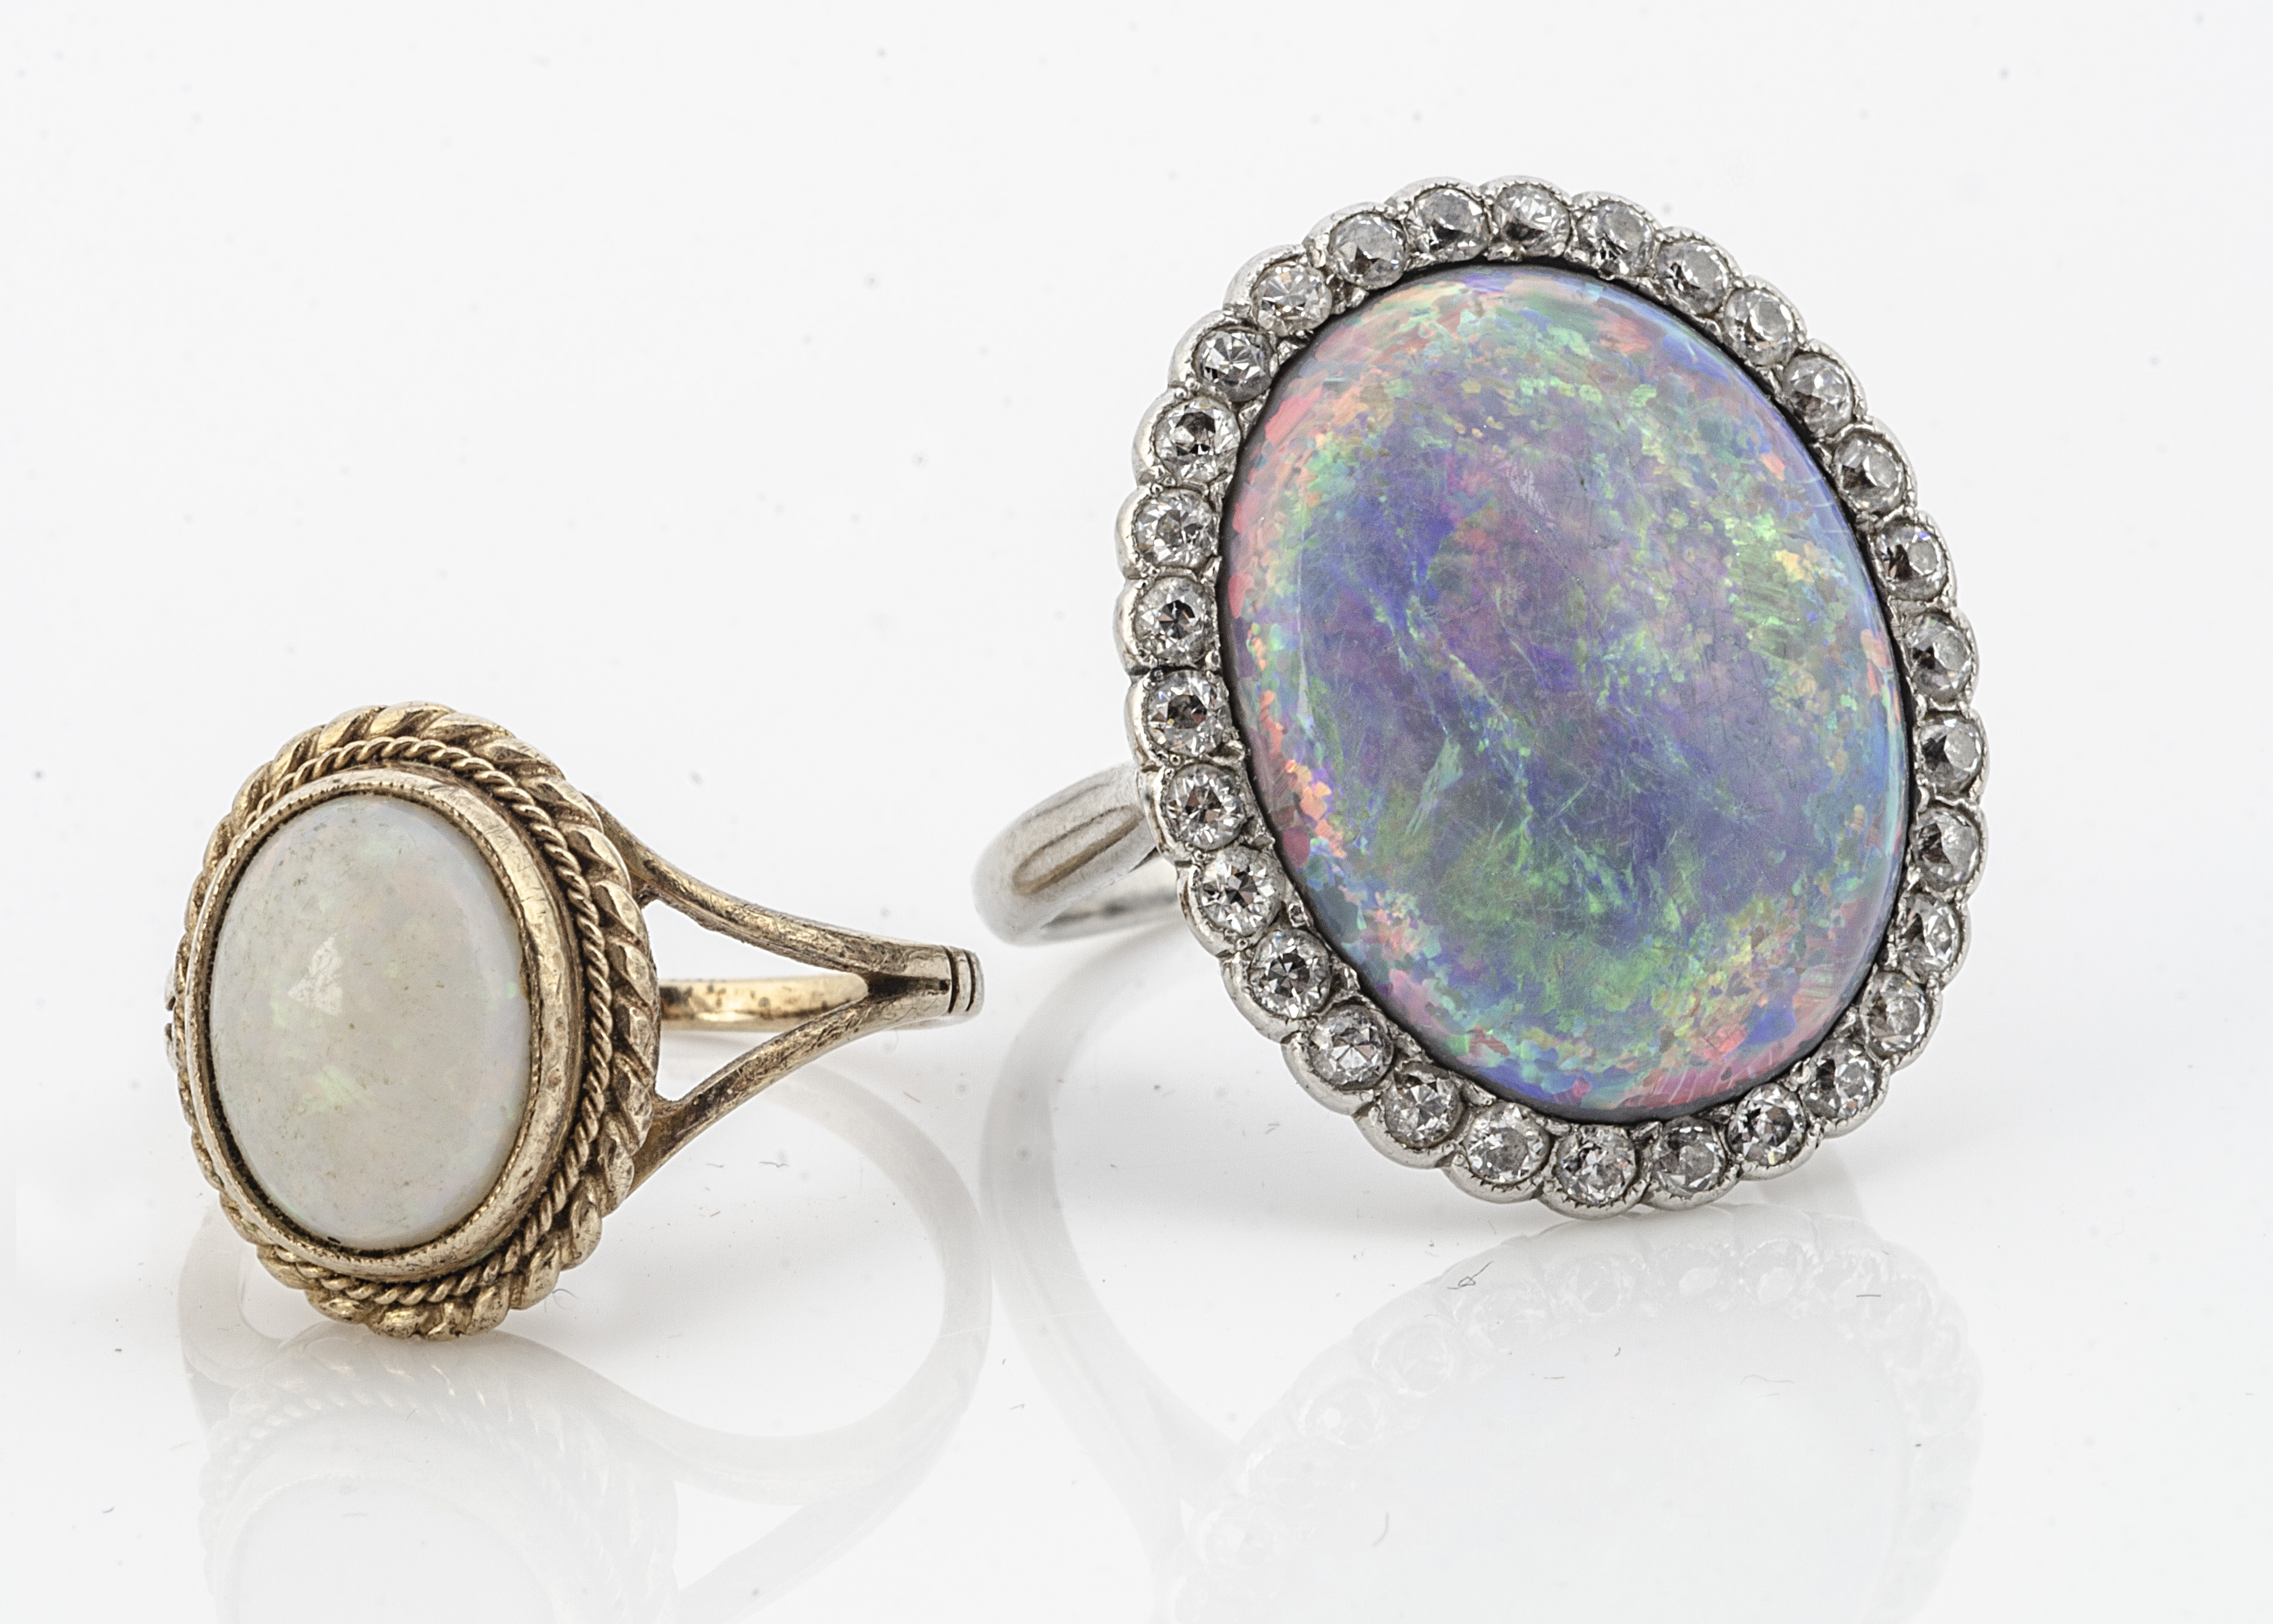 A large black opal and diamond bezel set dress ring, in white metal, the oval black opal with old